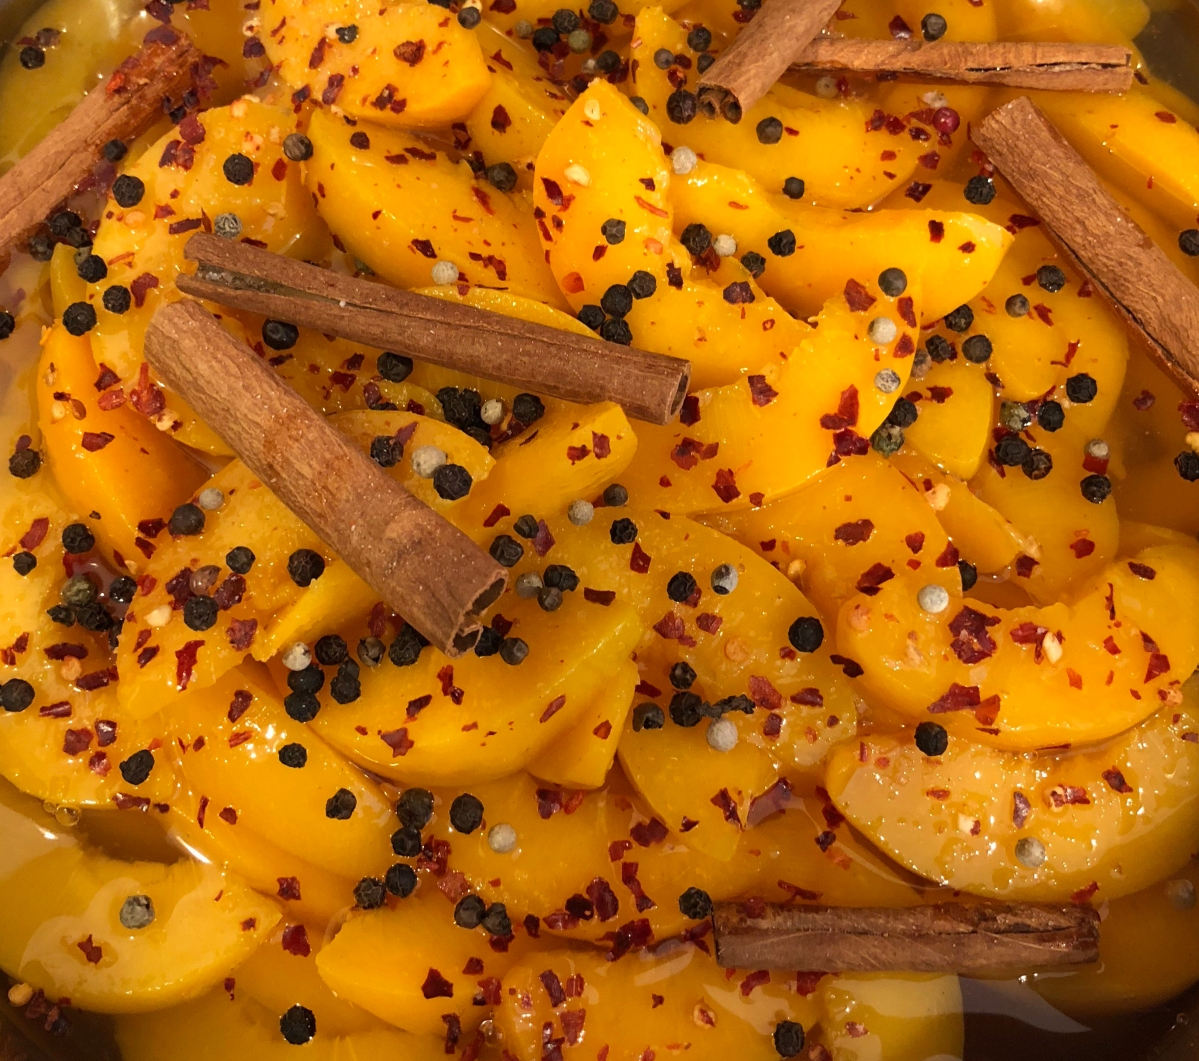 Spiced peaches and learning to cook